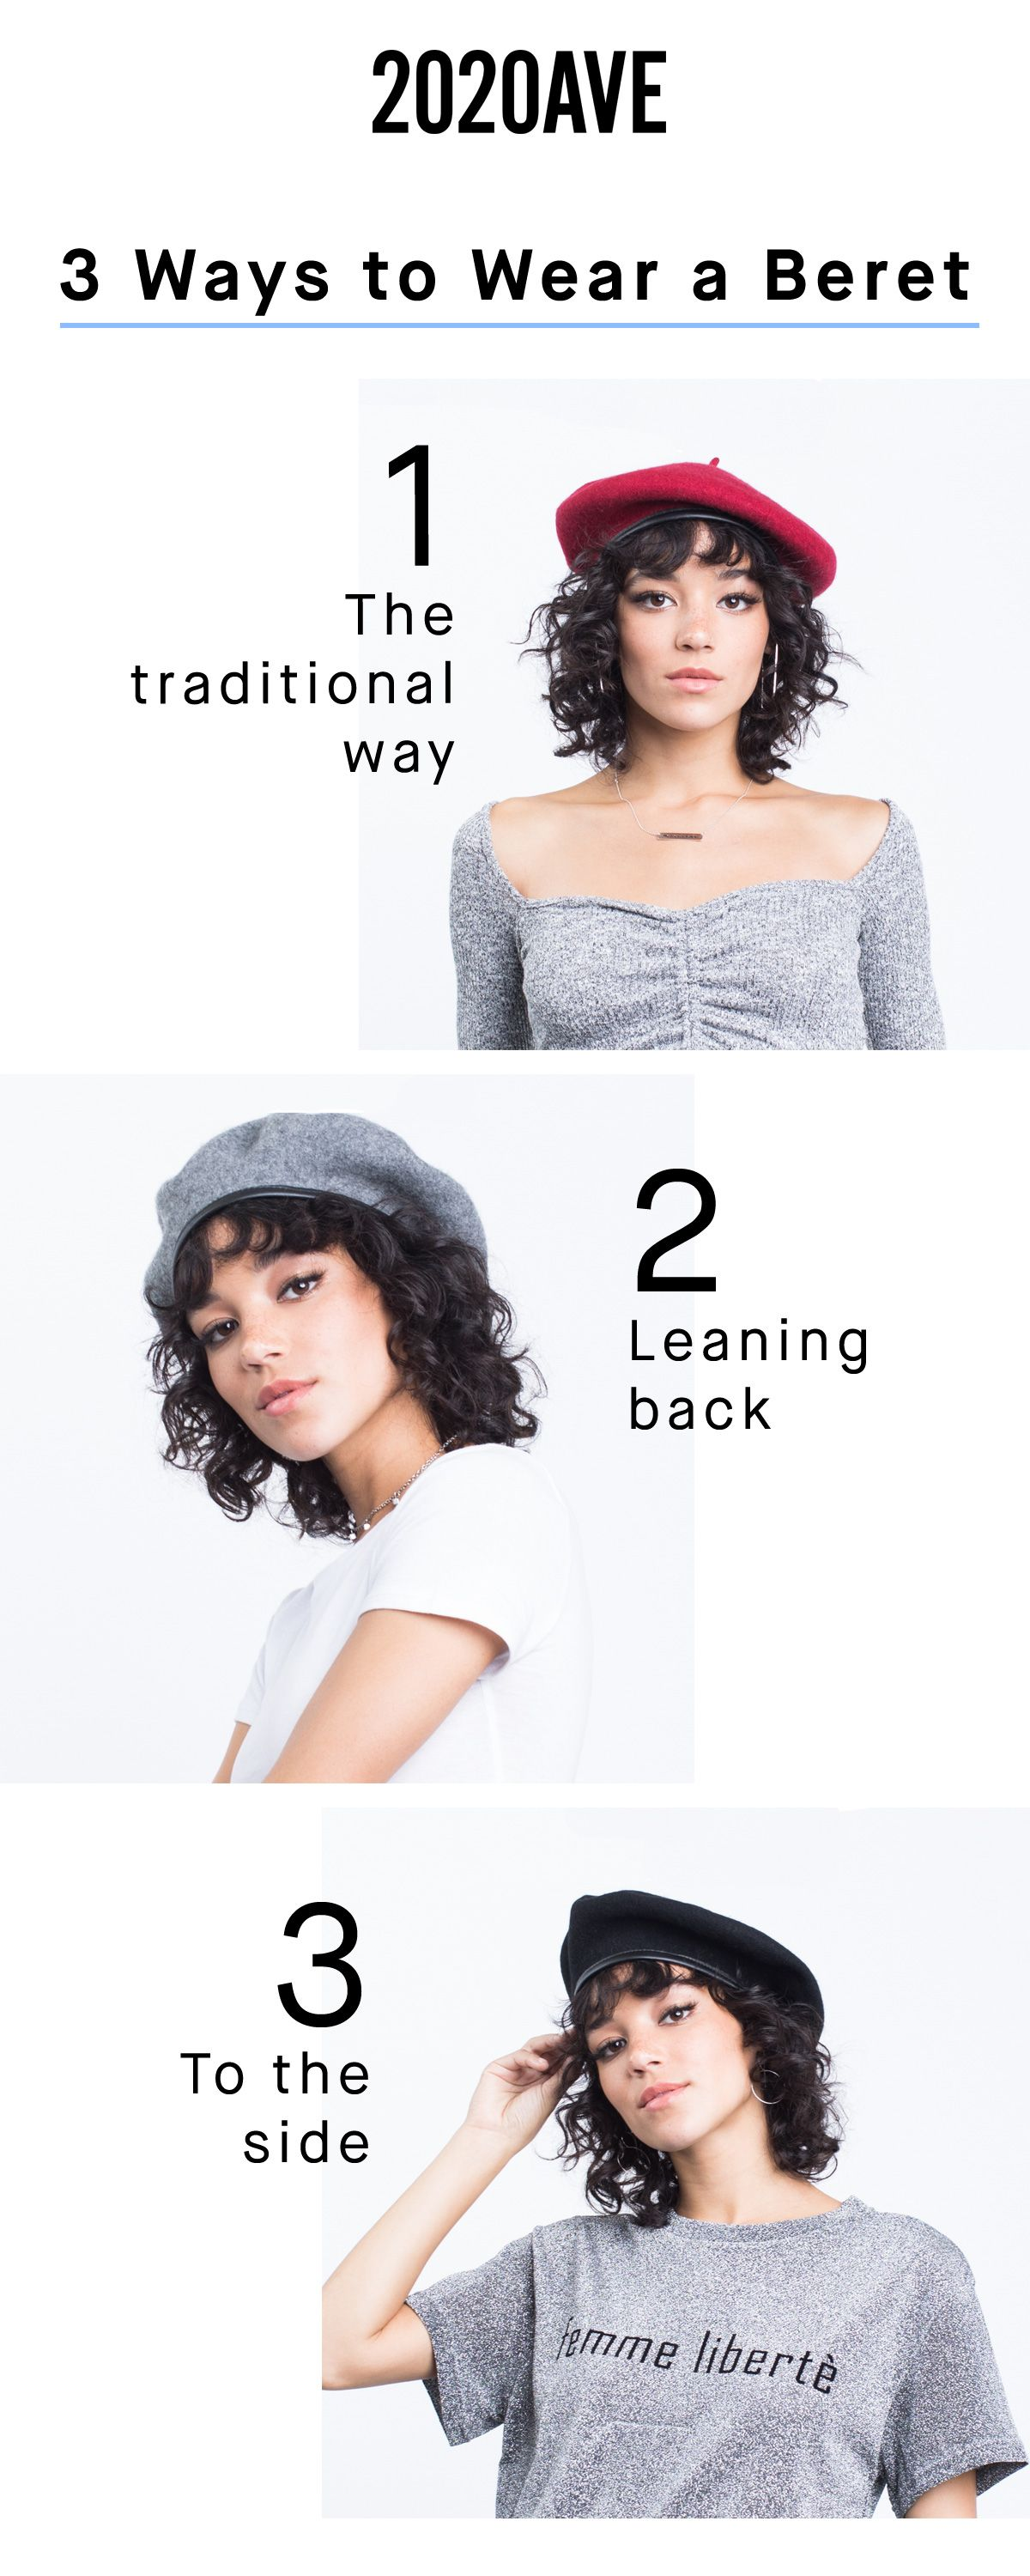 365e8a173cb62 How to Wear a  beret 3 Ways.  2020AVE